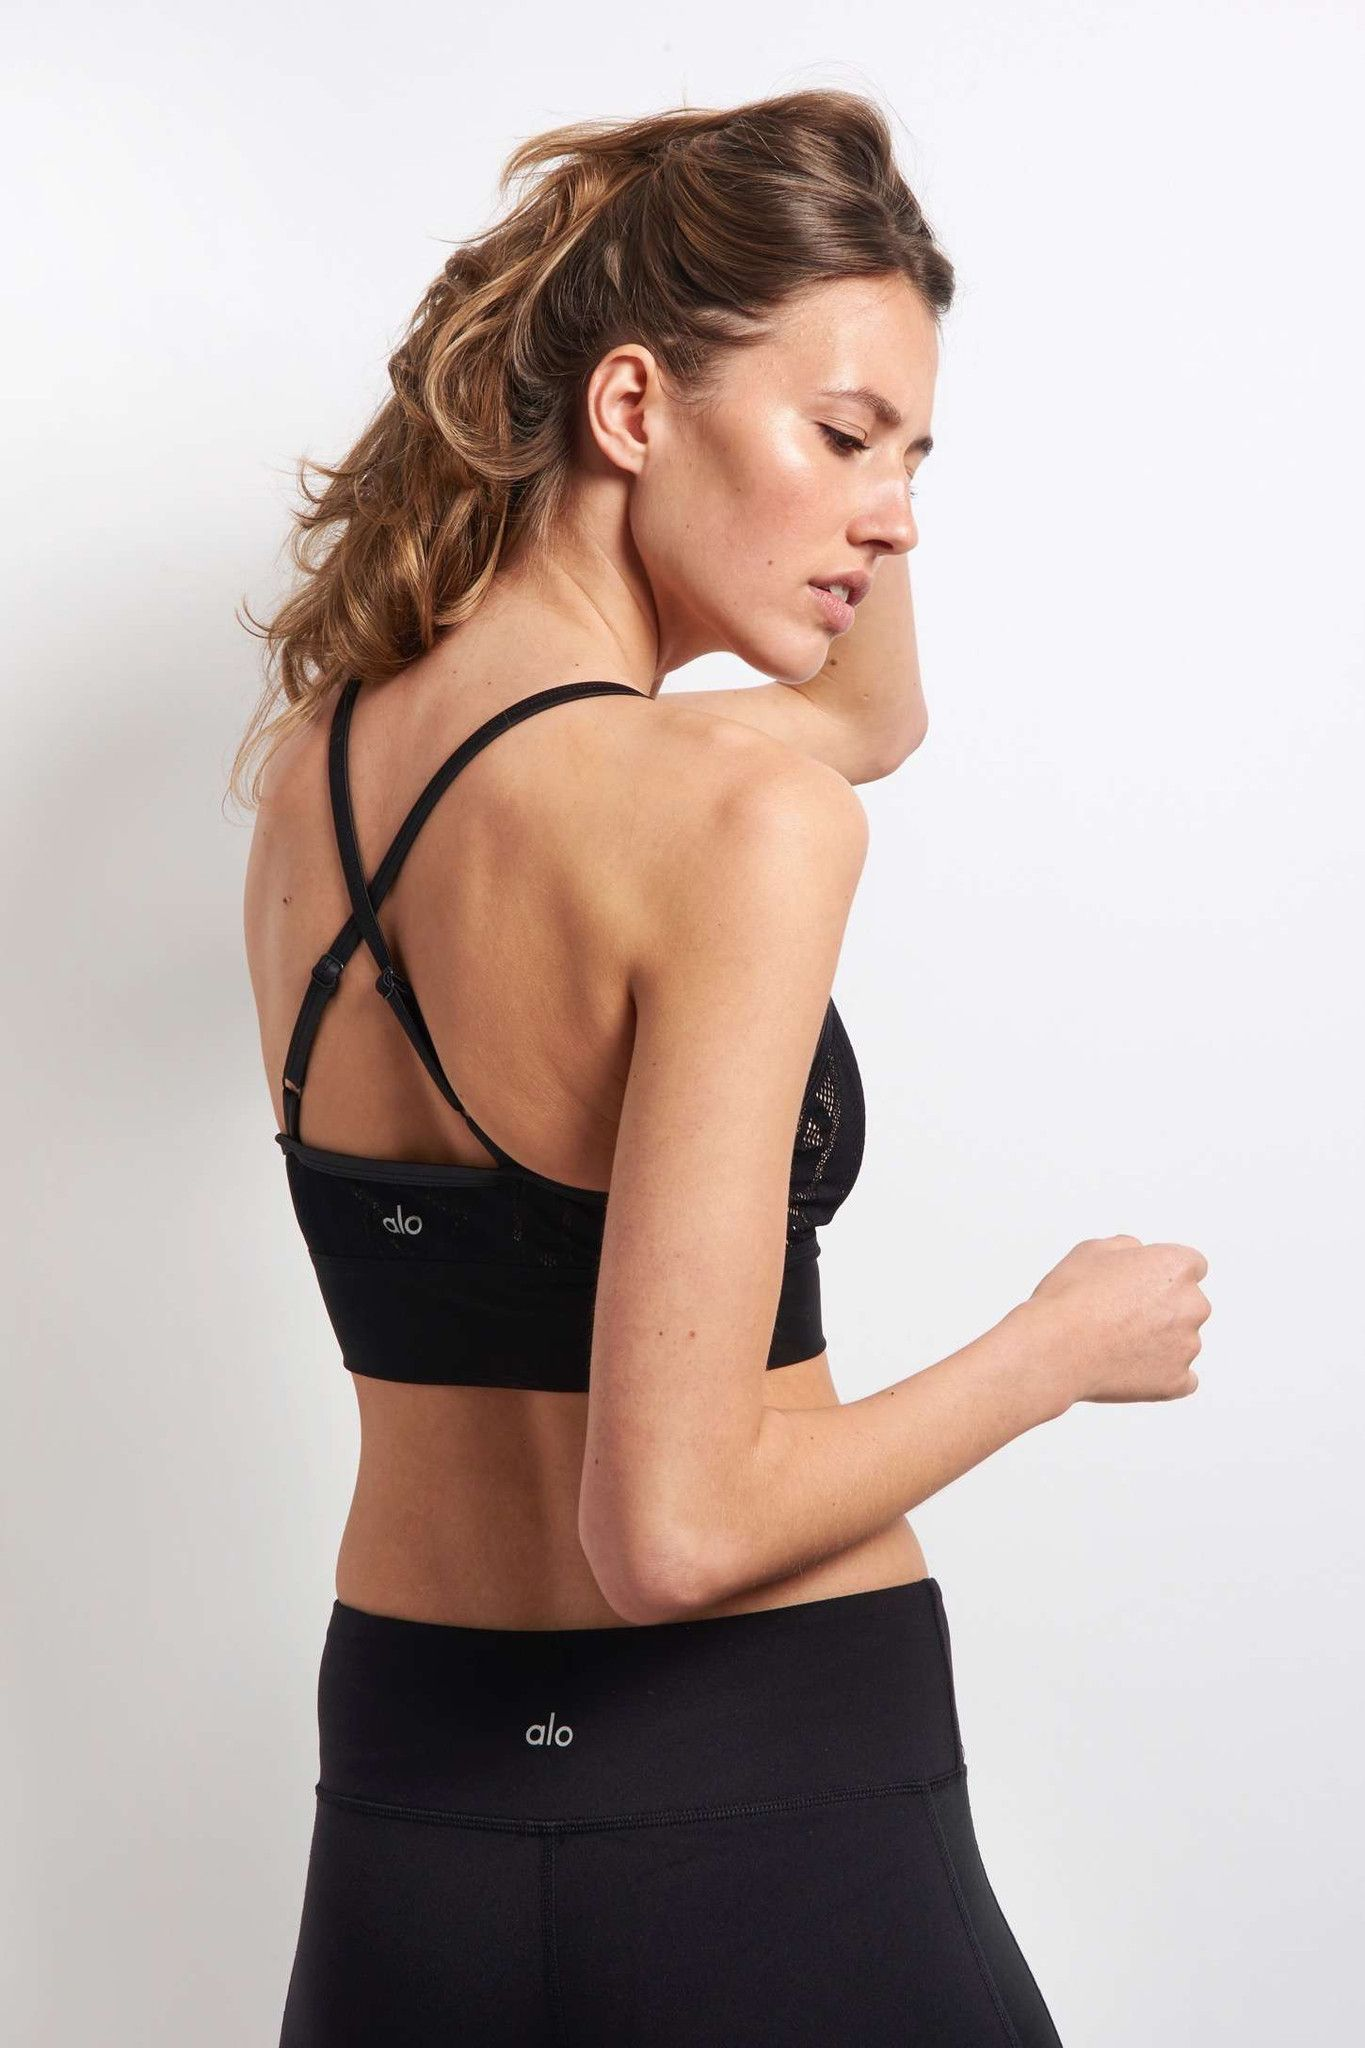 Alo Yoga Aria Bra - Black/Buff image 4 - The Sports Edit